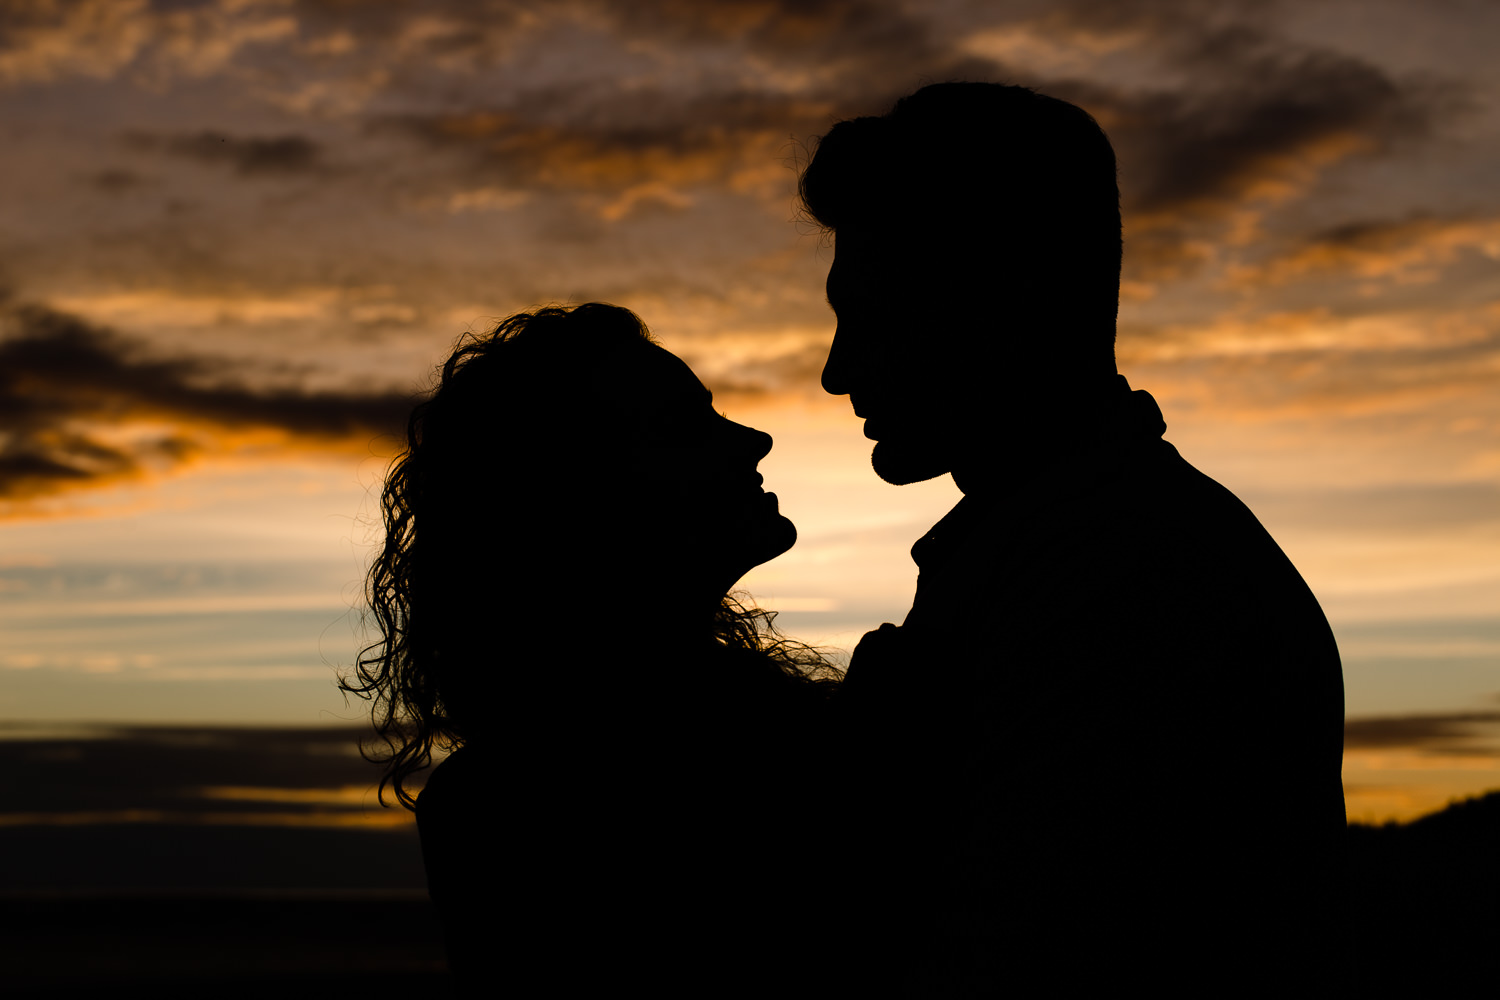 Couples silhouette against the colourful sunset sky - Wirral Country Park